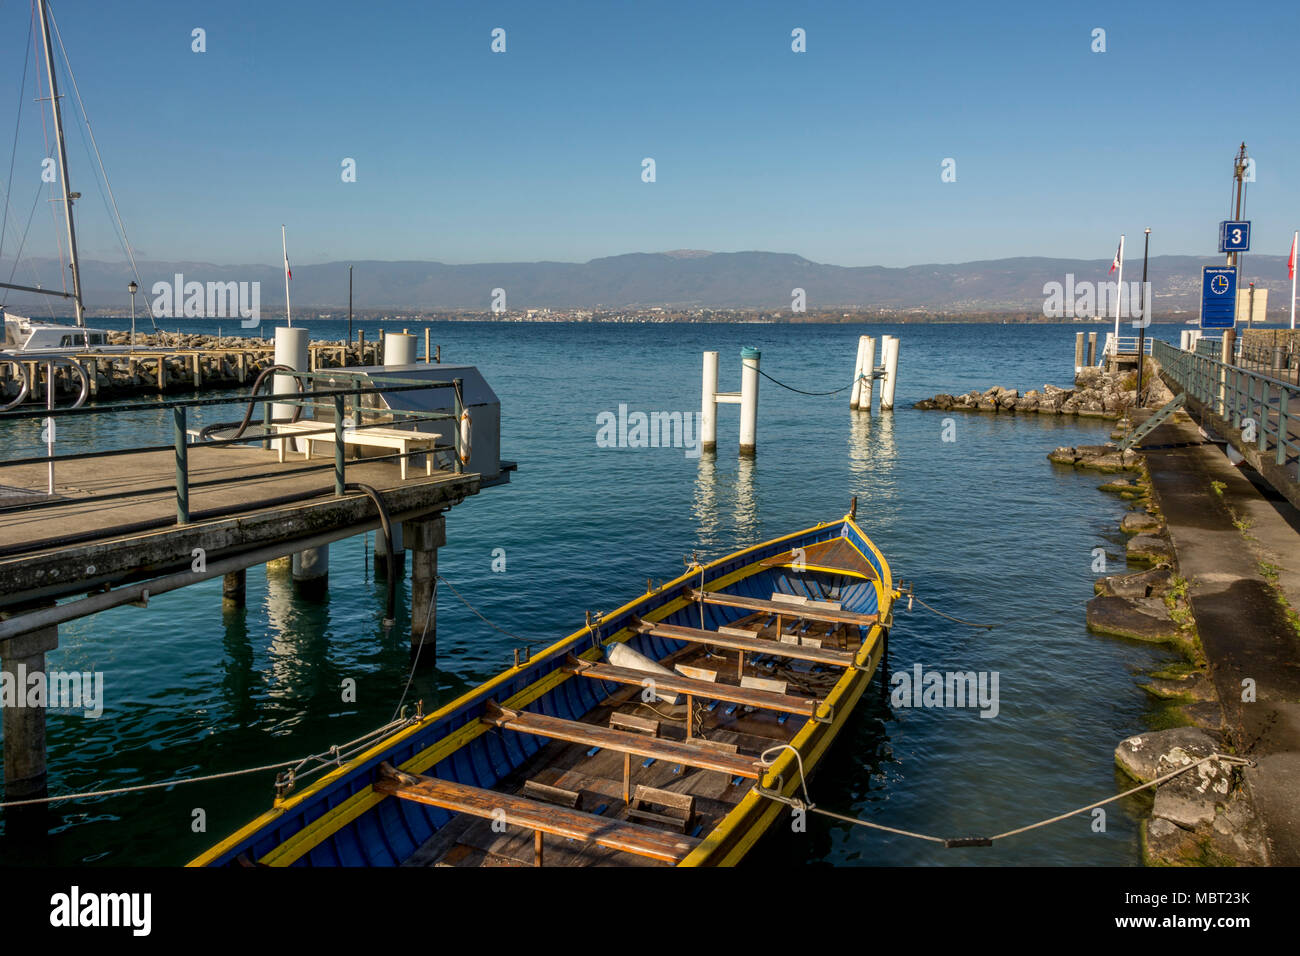 Typical small boat. Old port on Lac Leman, Lake Geneva, Yvoire village, Rhone-Alpes, Haute-Savoie, France - Stock Image